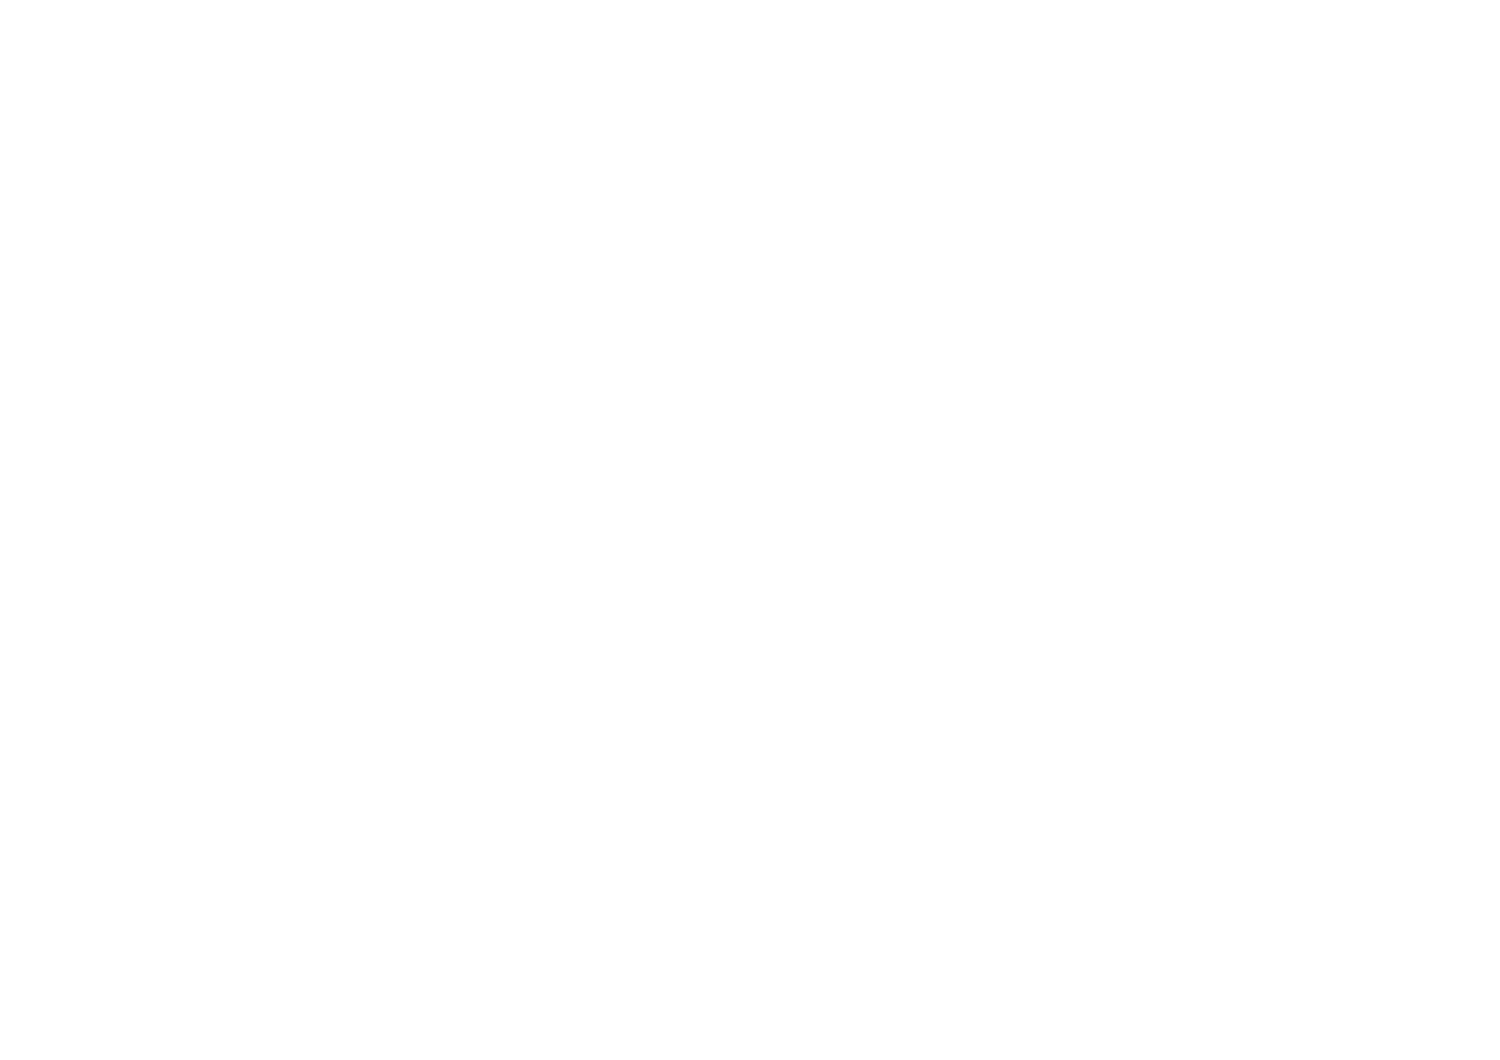 The Crimson Kings